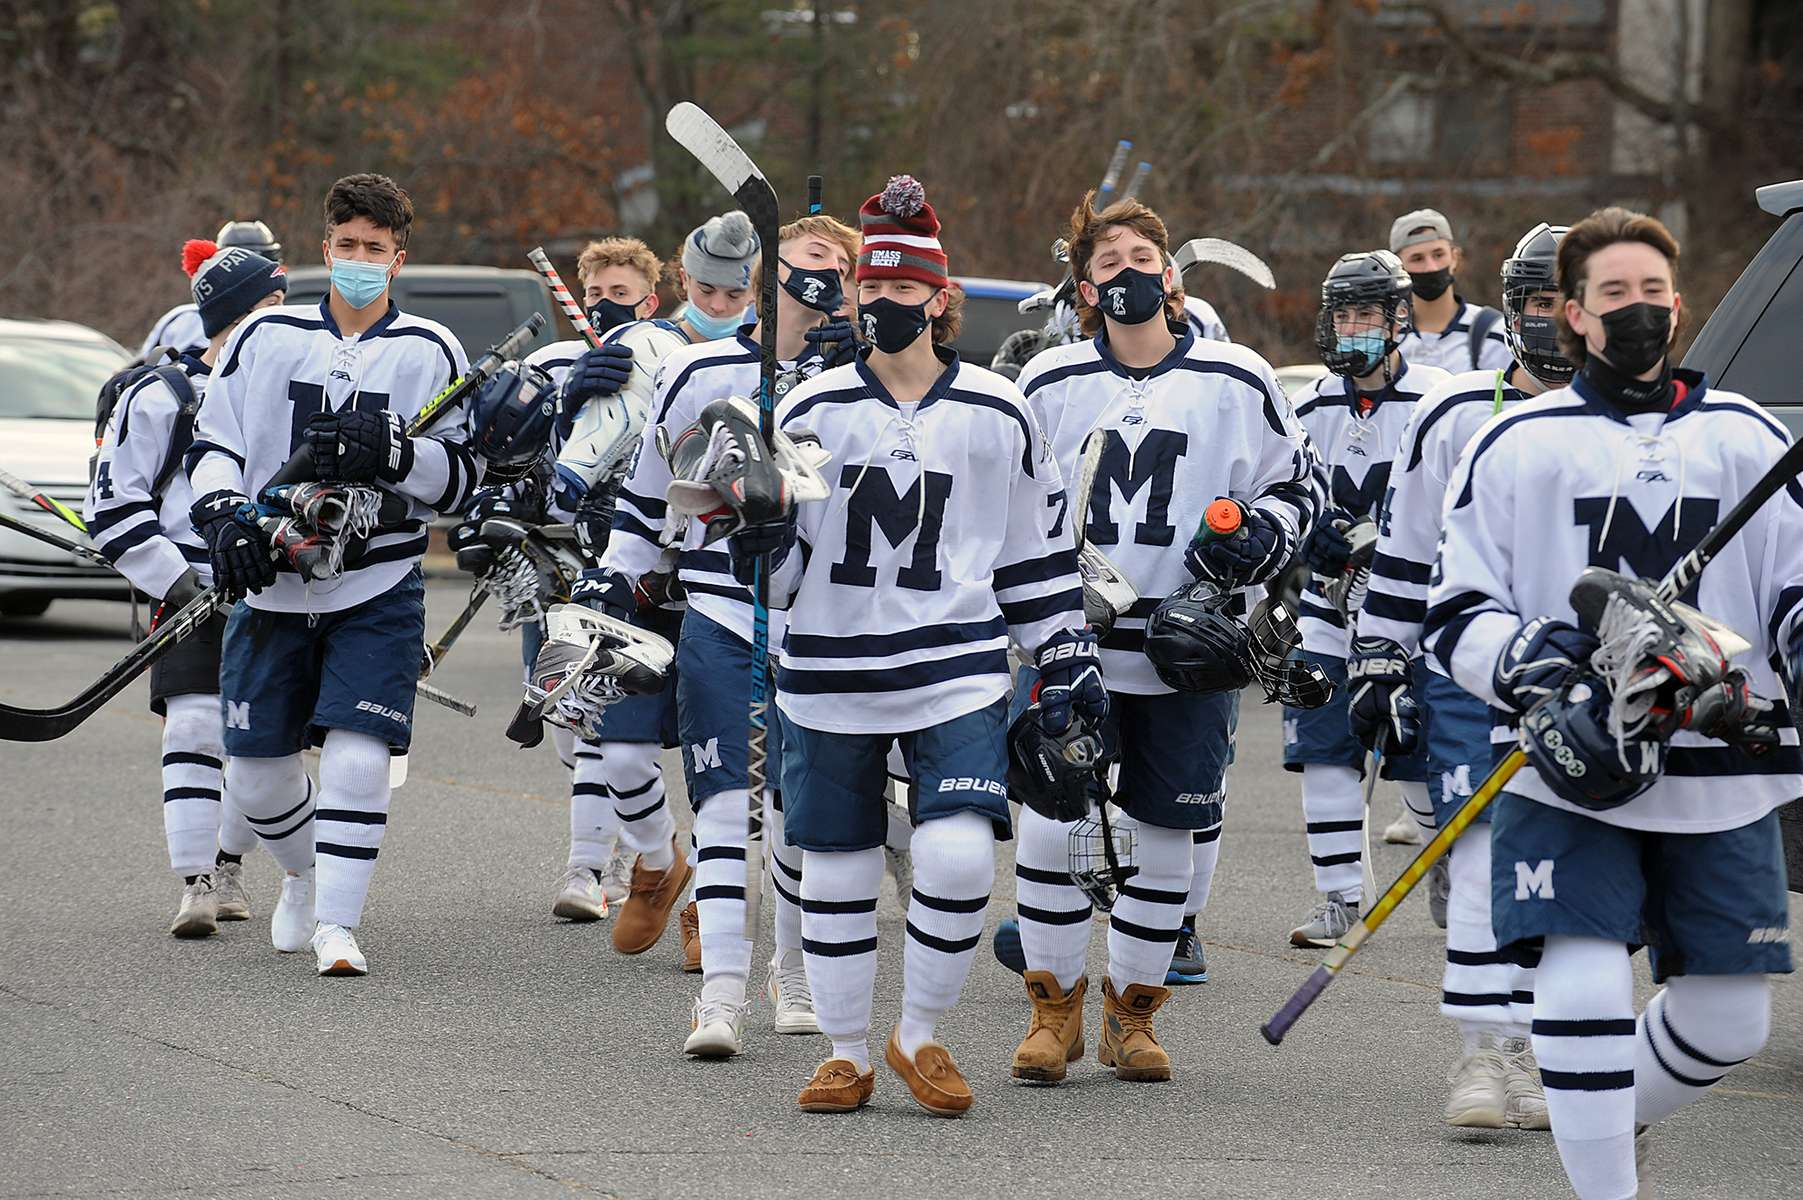 The Medway High  School hockey team marches through the parking lot to Pirelli Veterans Arena in Franklin, Jan. 6, 2021. The locker rooms are closed due to the COVID-19 pandemic. Medway played its season opener against Bellingham.